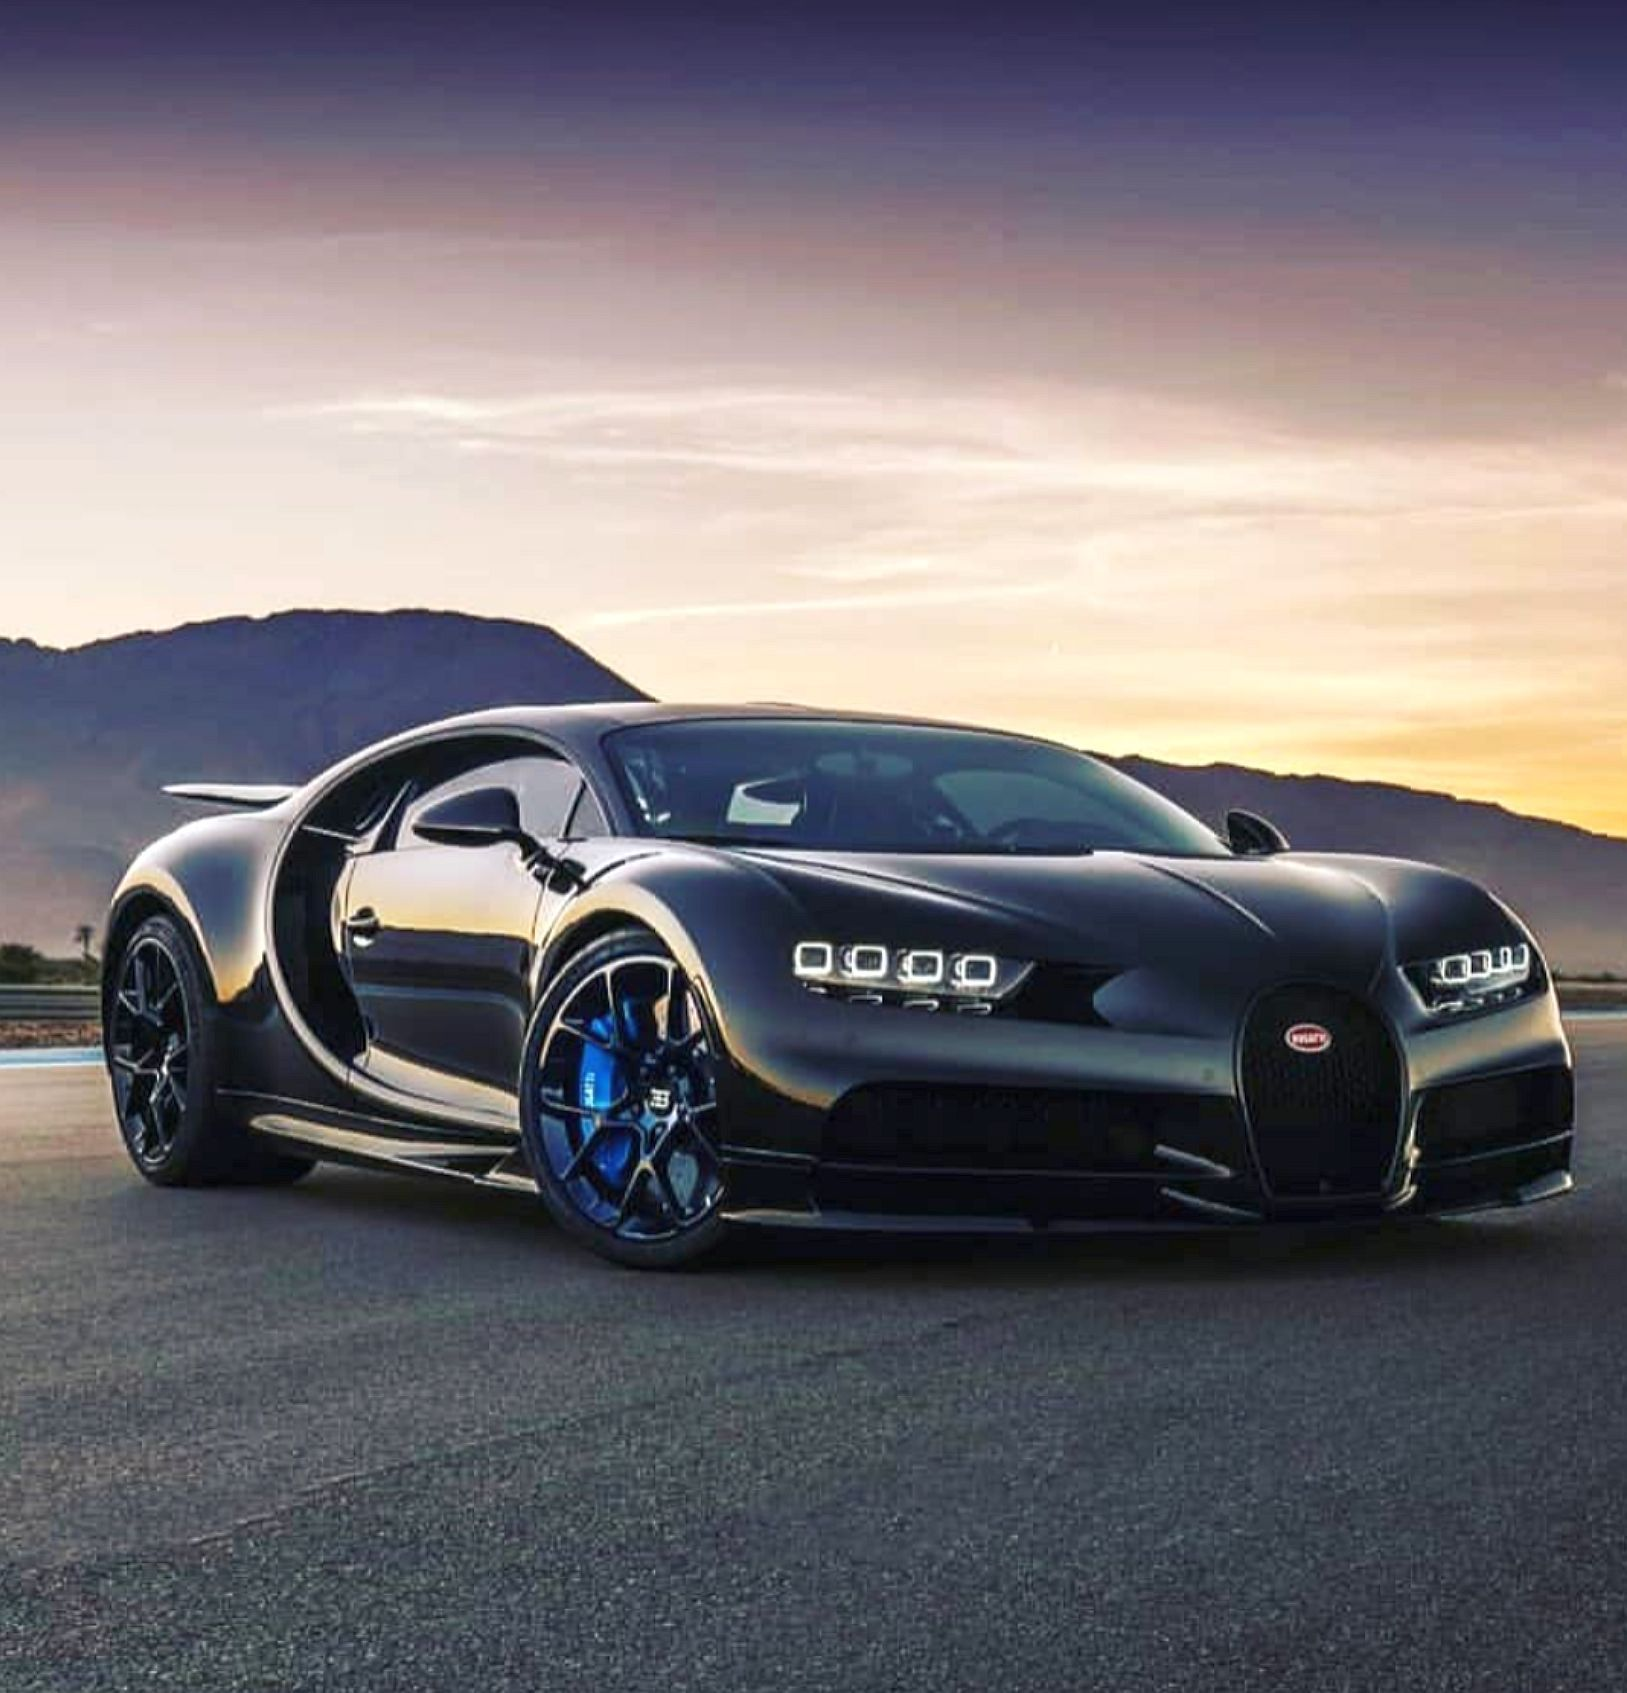 13 Amazing Best Sport Car 2019 With Images Sports Cars Bugatti